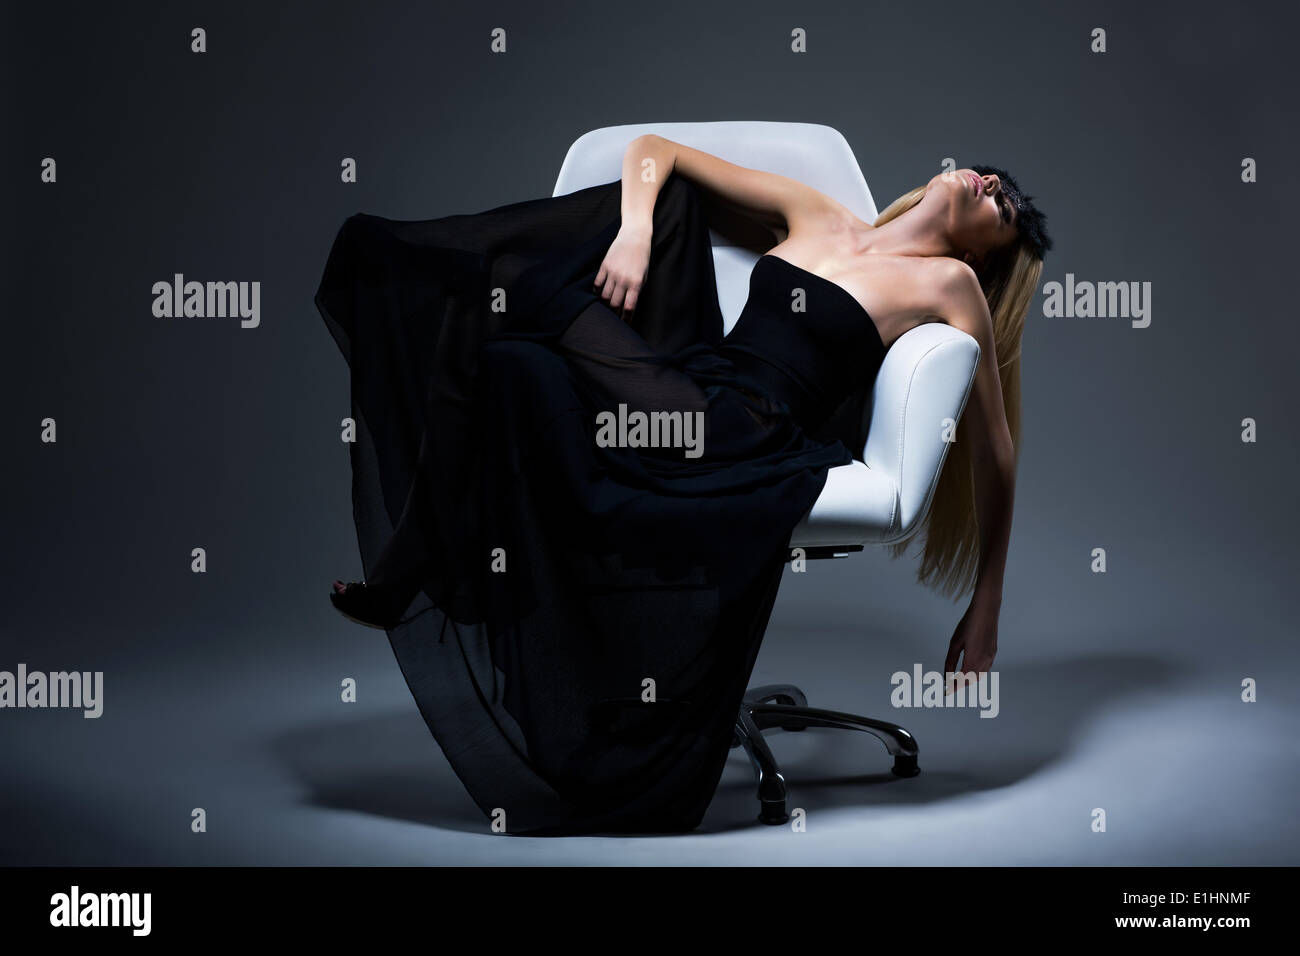 Harmony & Sensuality. Romantic Blond Female in Black Dress resting in Armchair. Satisfaction Stock Photo